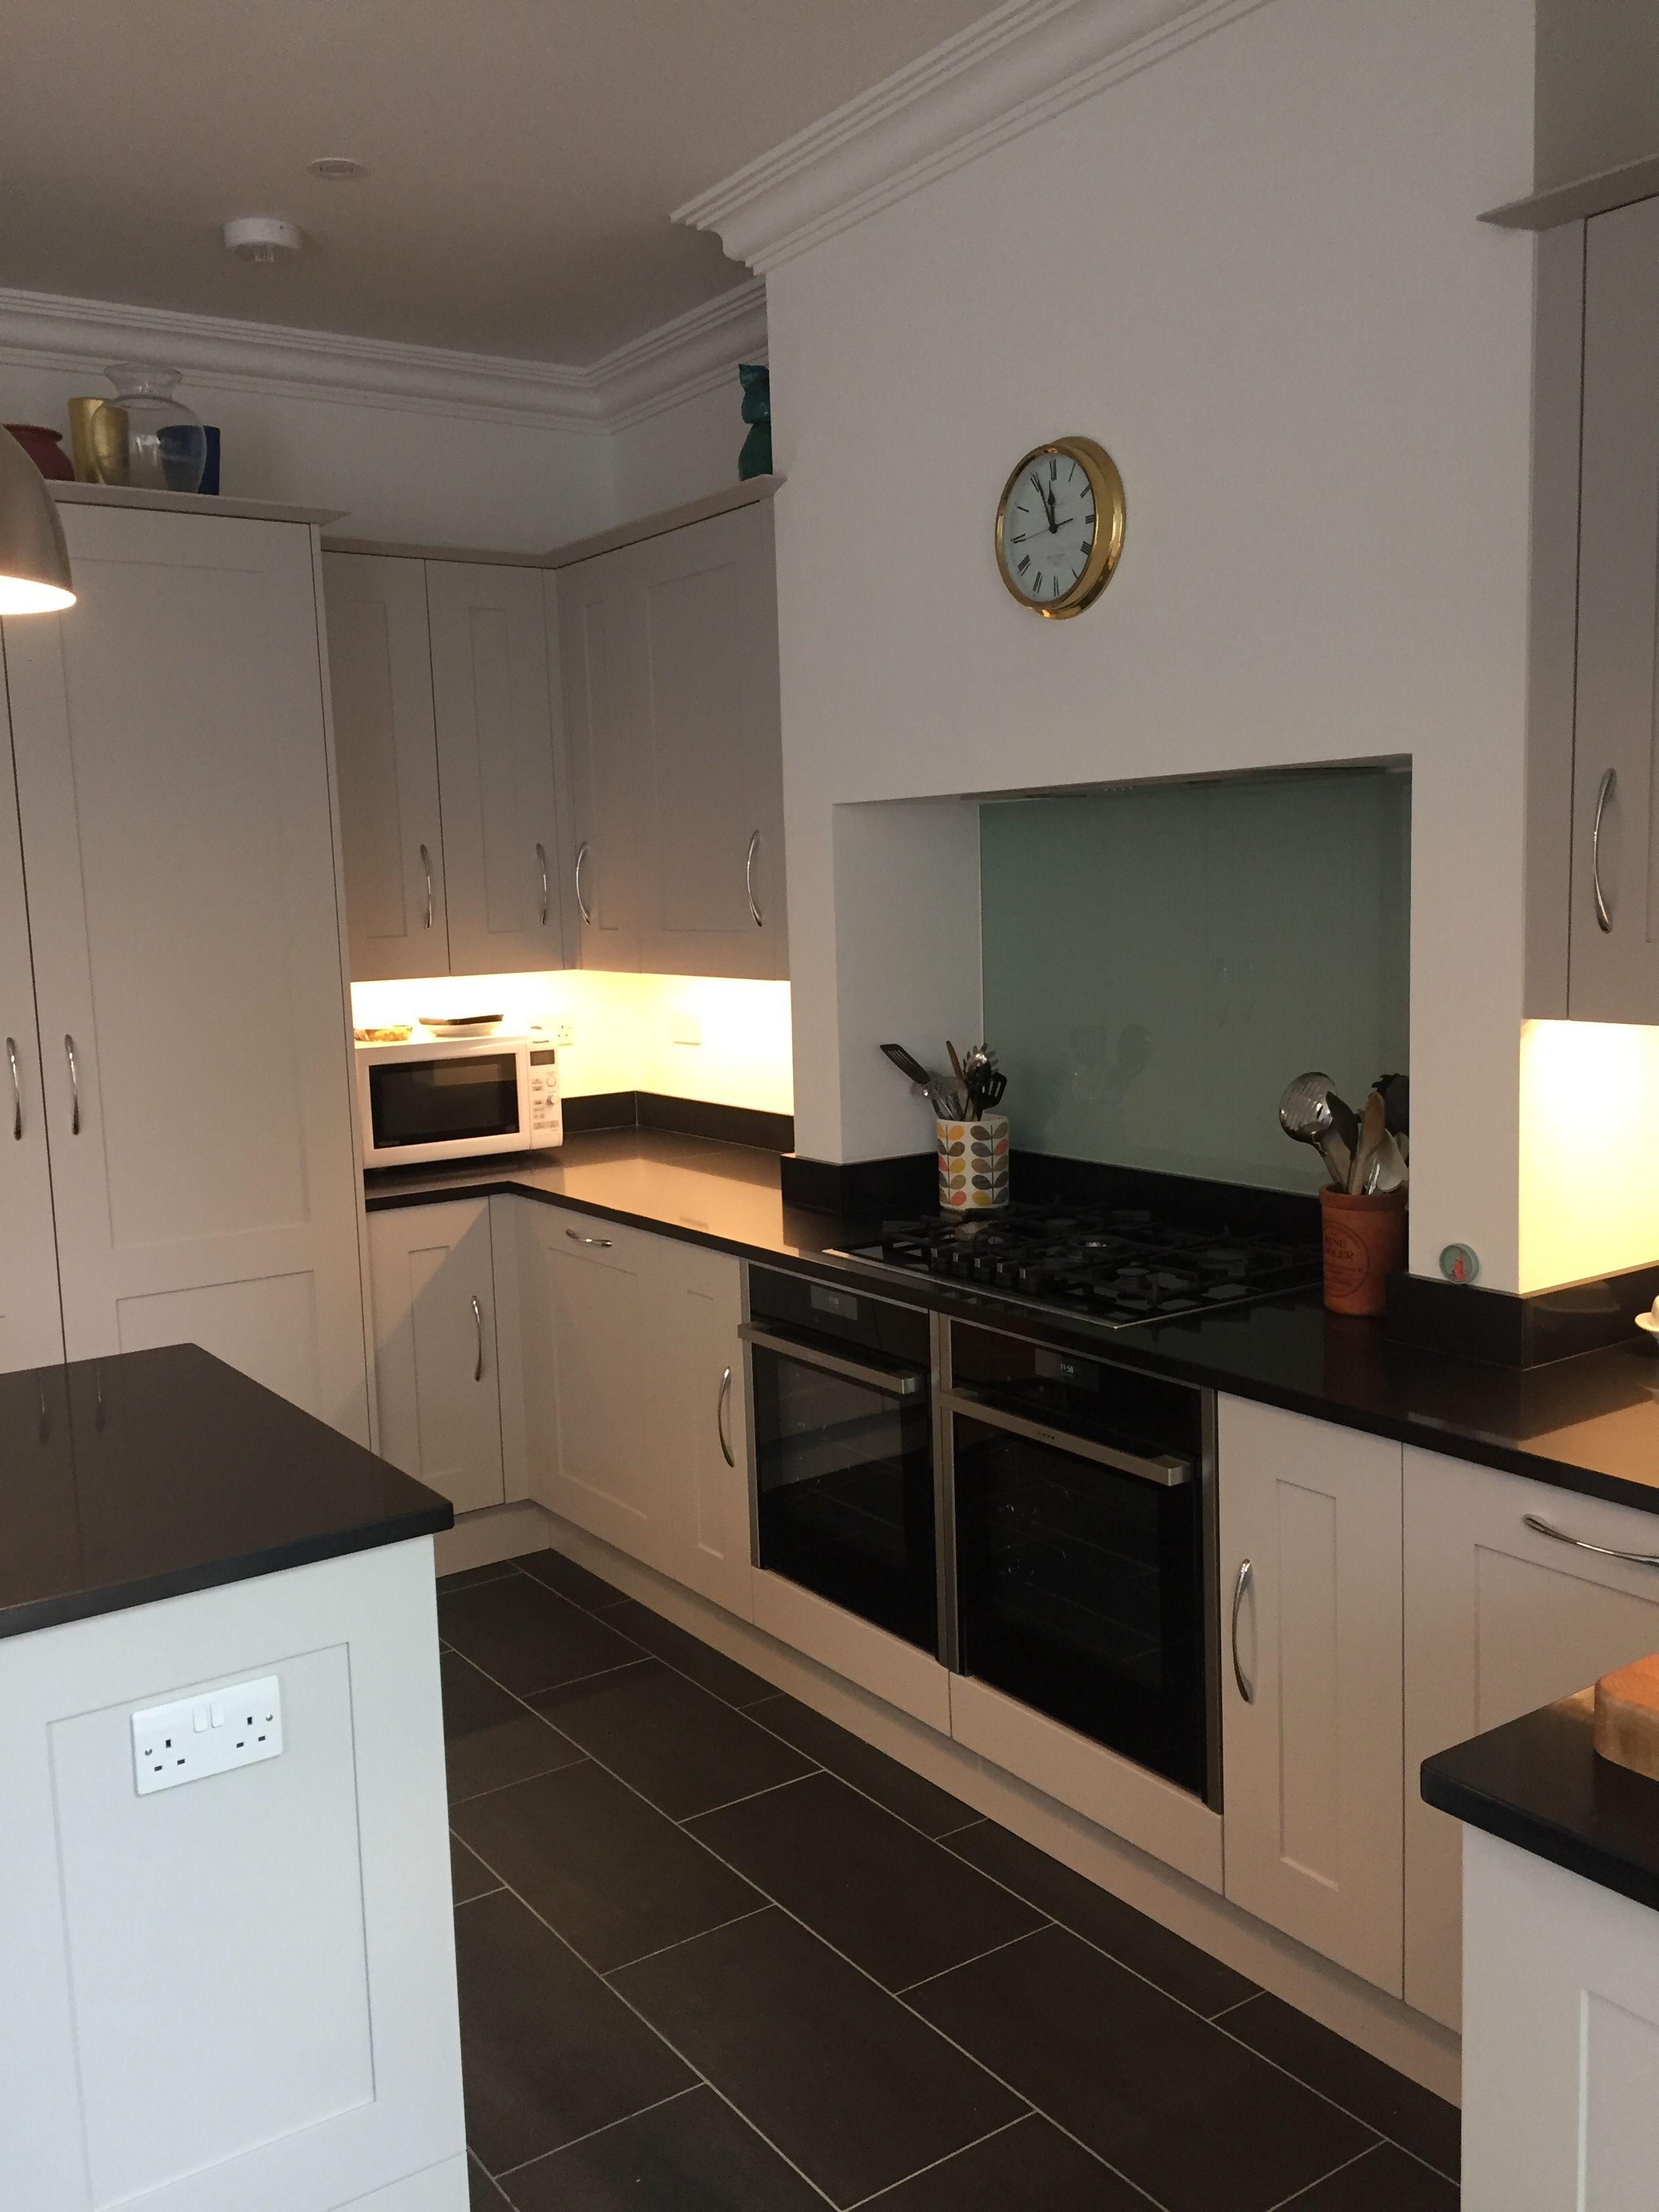 Traditional Kitchen With Belfast Double Sink, Double Oven, Droplights, Kitchen